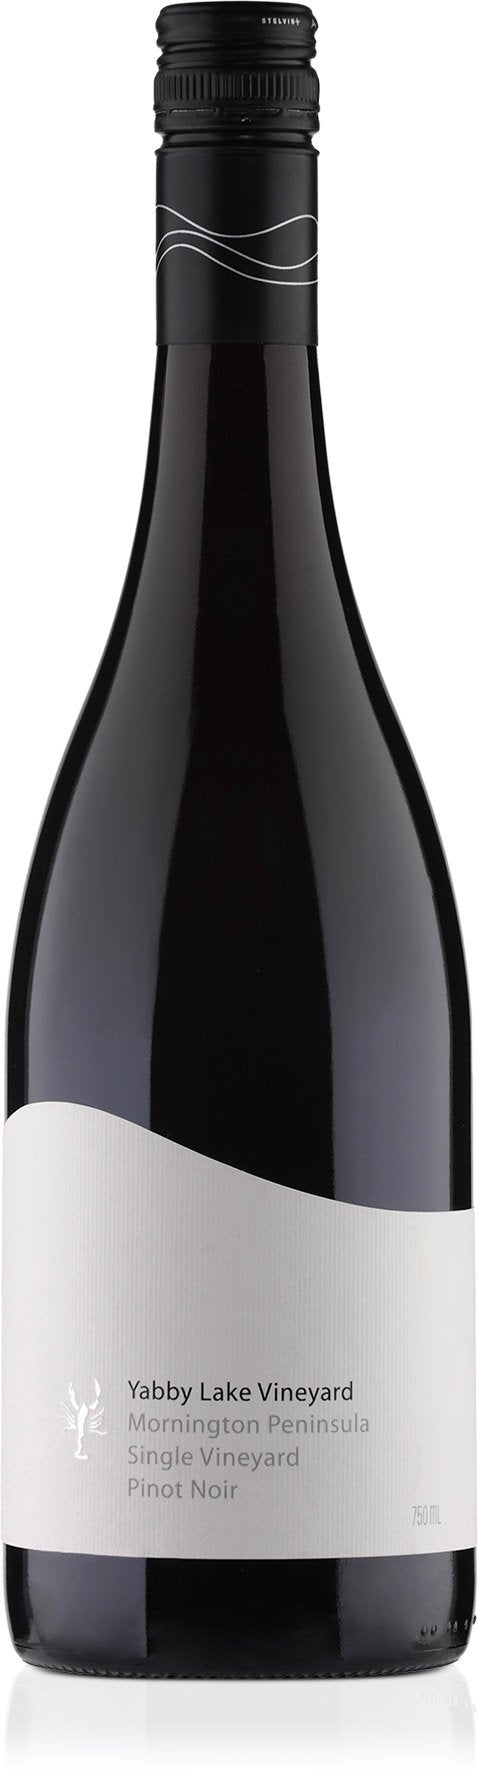 Yabby Lake-2018 Yabby Lake Pinot Noir-Pubble Alcohol Delivery